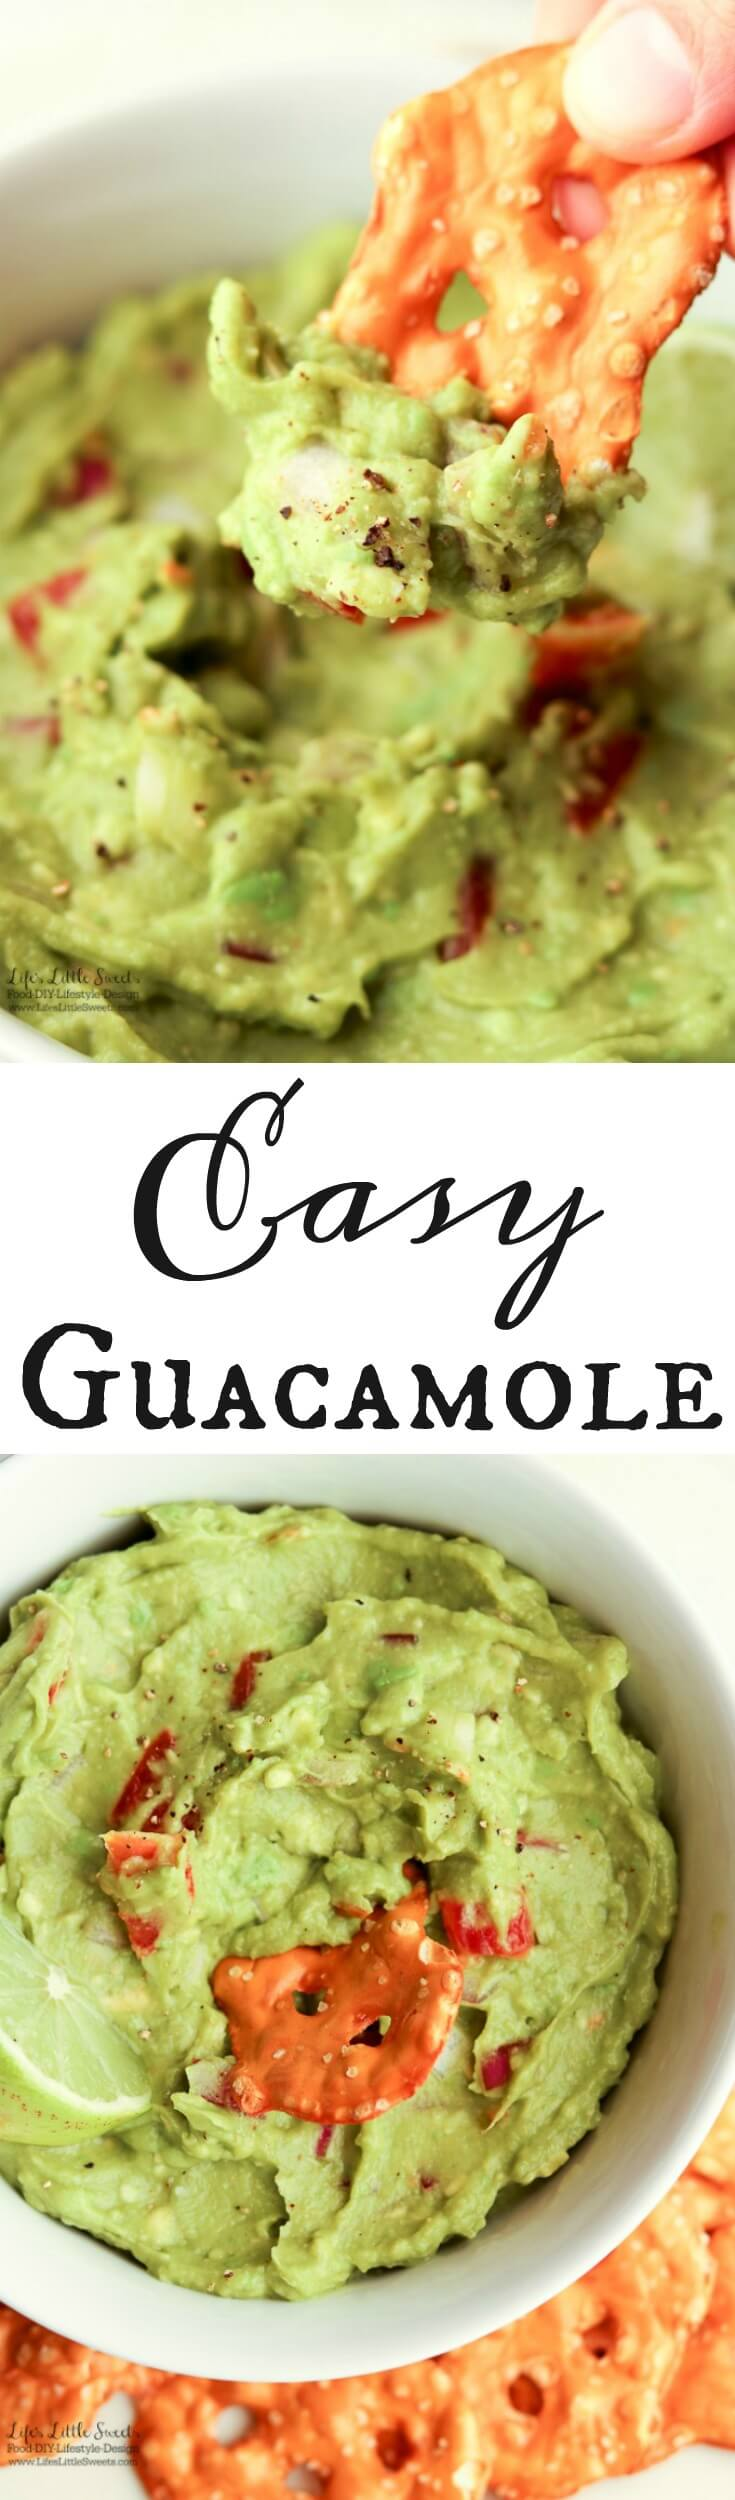 This Easy Guacamole is fresh and a perfect recipe for Spring and Summer. A simple recipe with red onions, fresh chopped tomatoes and a spritz of lime, enjoy it for any gathering, game day or a quick snack for yourself! www.lifeslittlesweets.com